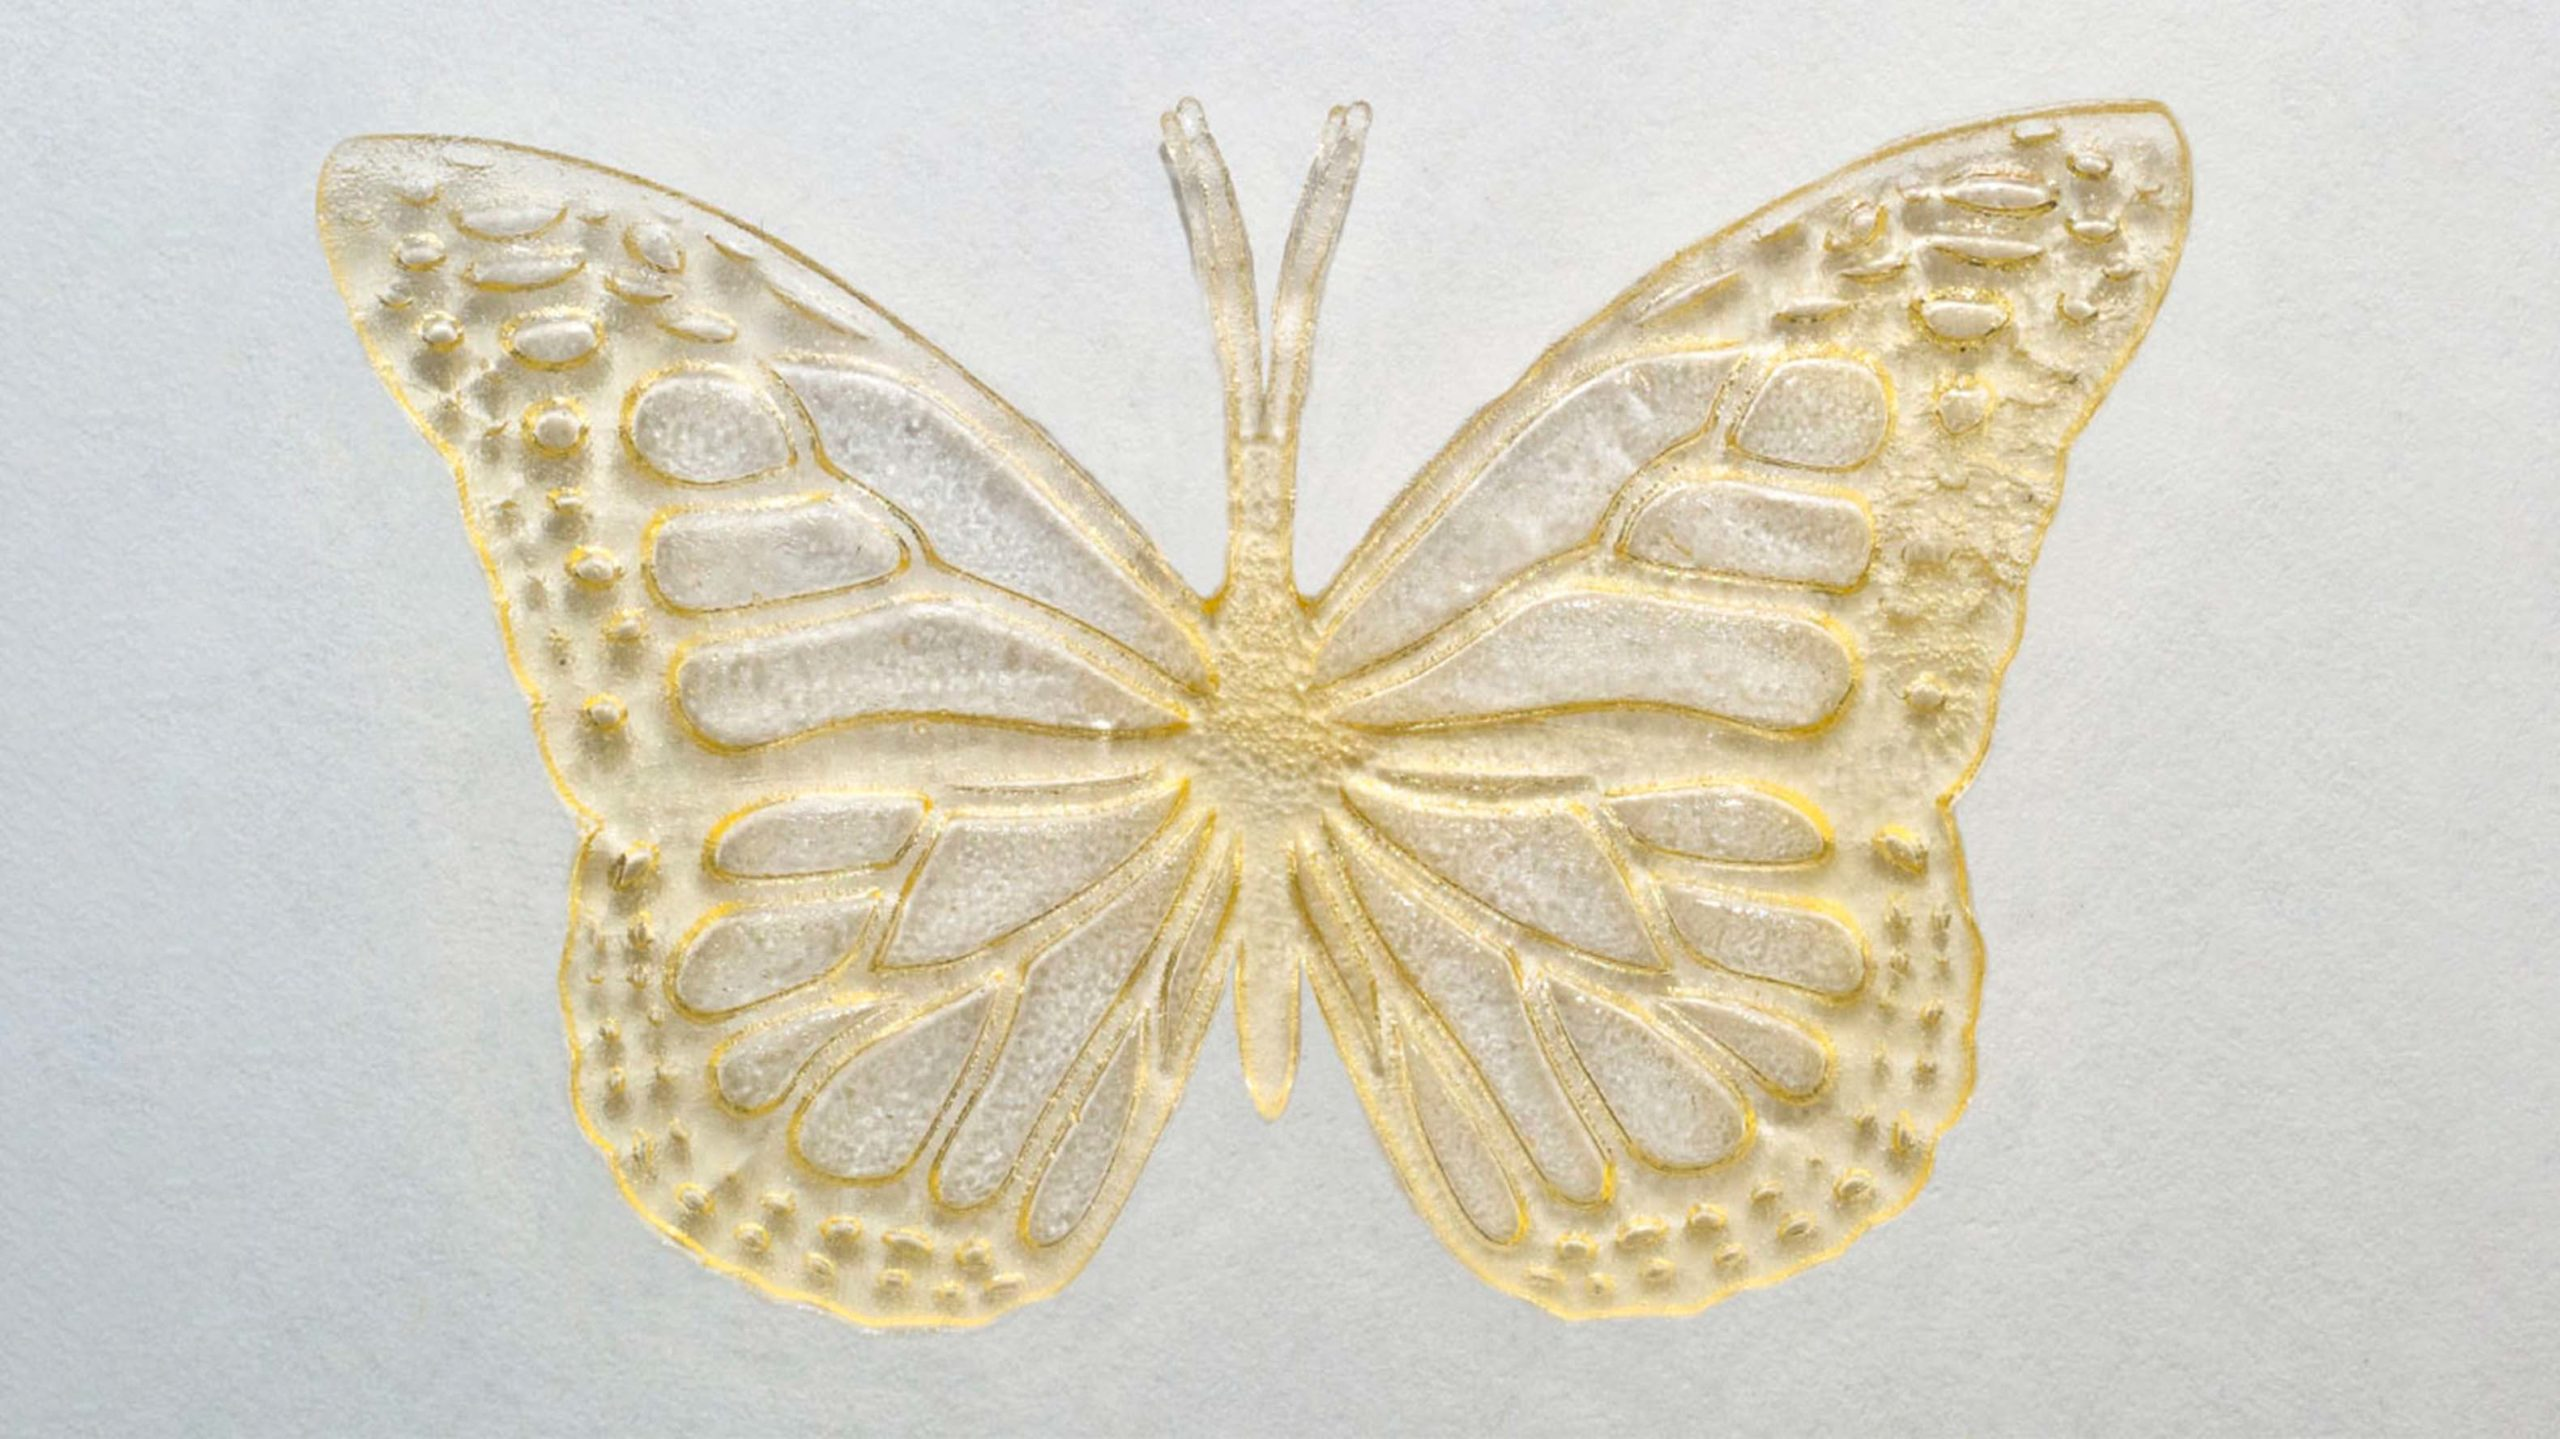 3D printed butterfly made with used cooking oil